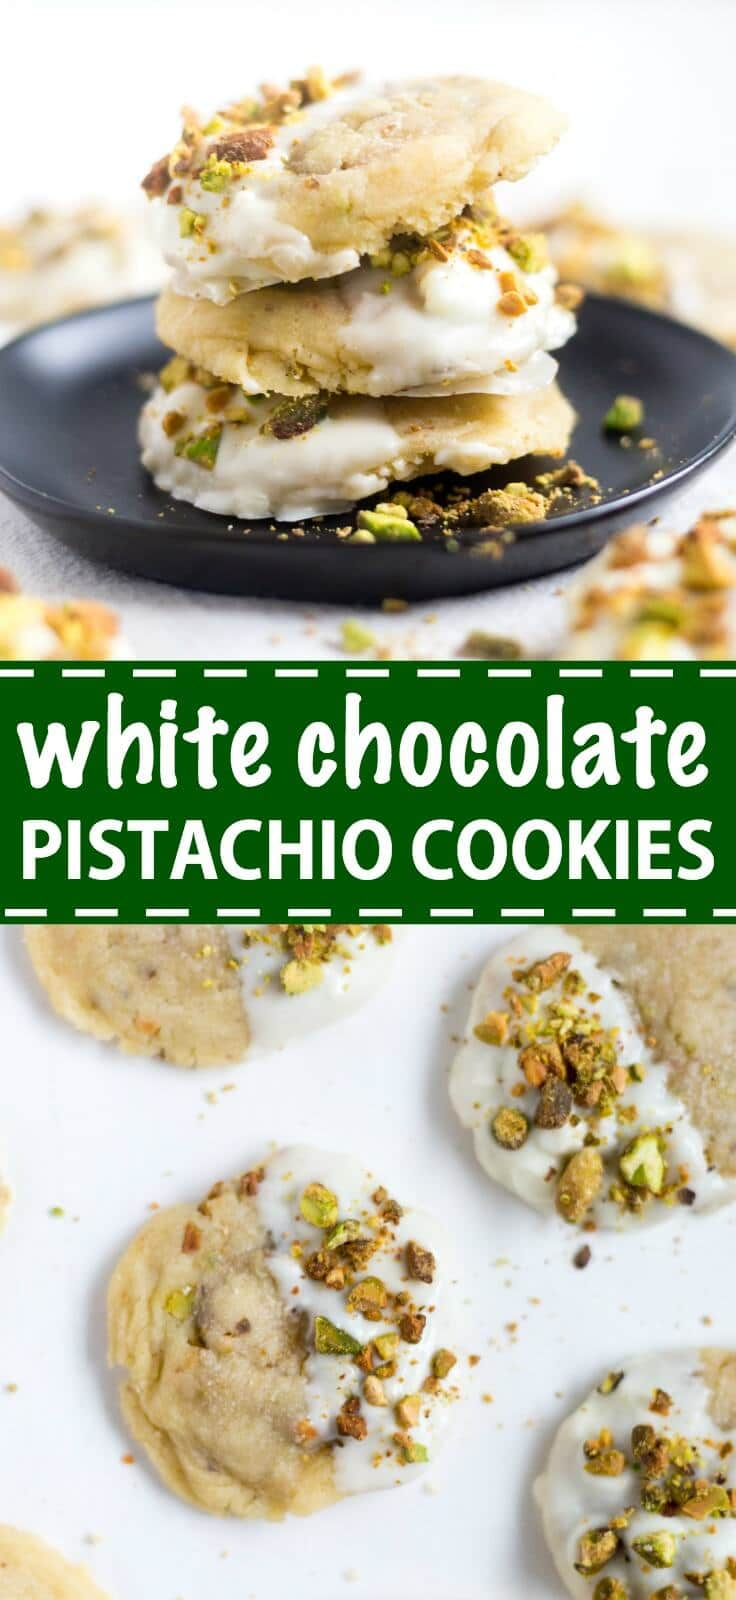 These white chocolate pistachio cookies are such a festive Christmas cookie recipe. They're studded with chopped green pistachios and white chocolate chips then dipped in white chocolate to make them look just as good as they taste.